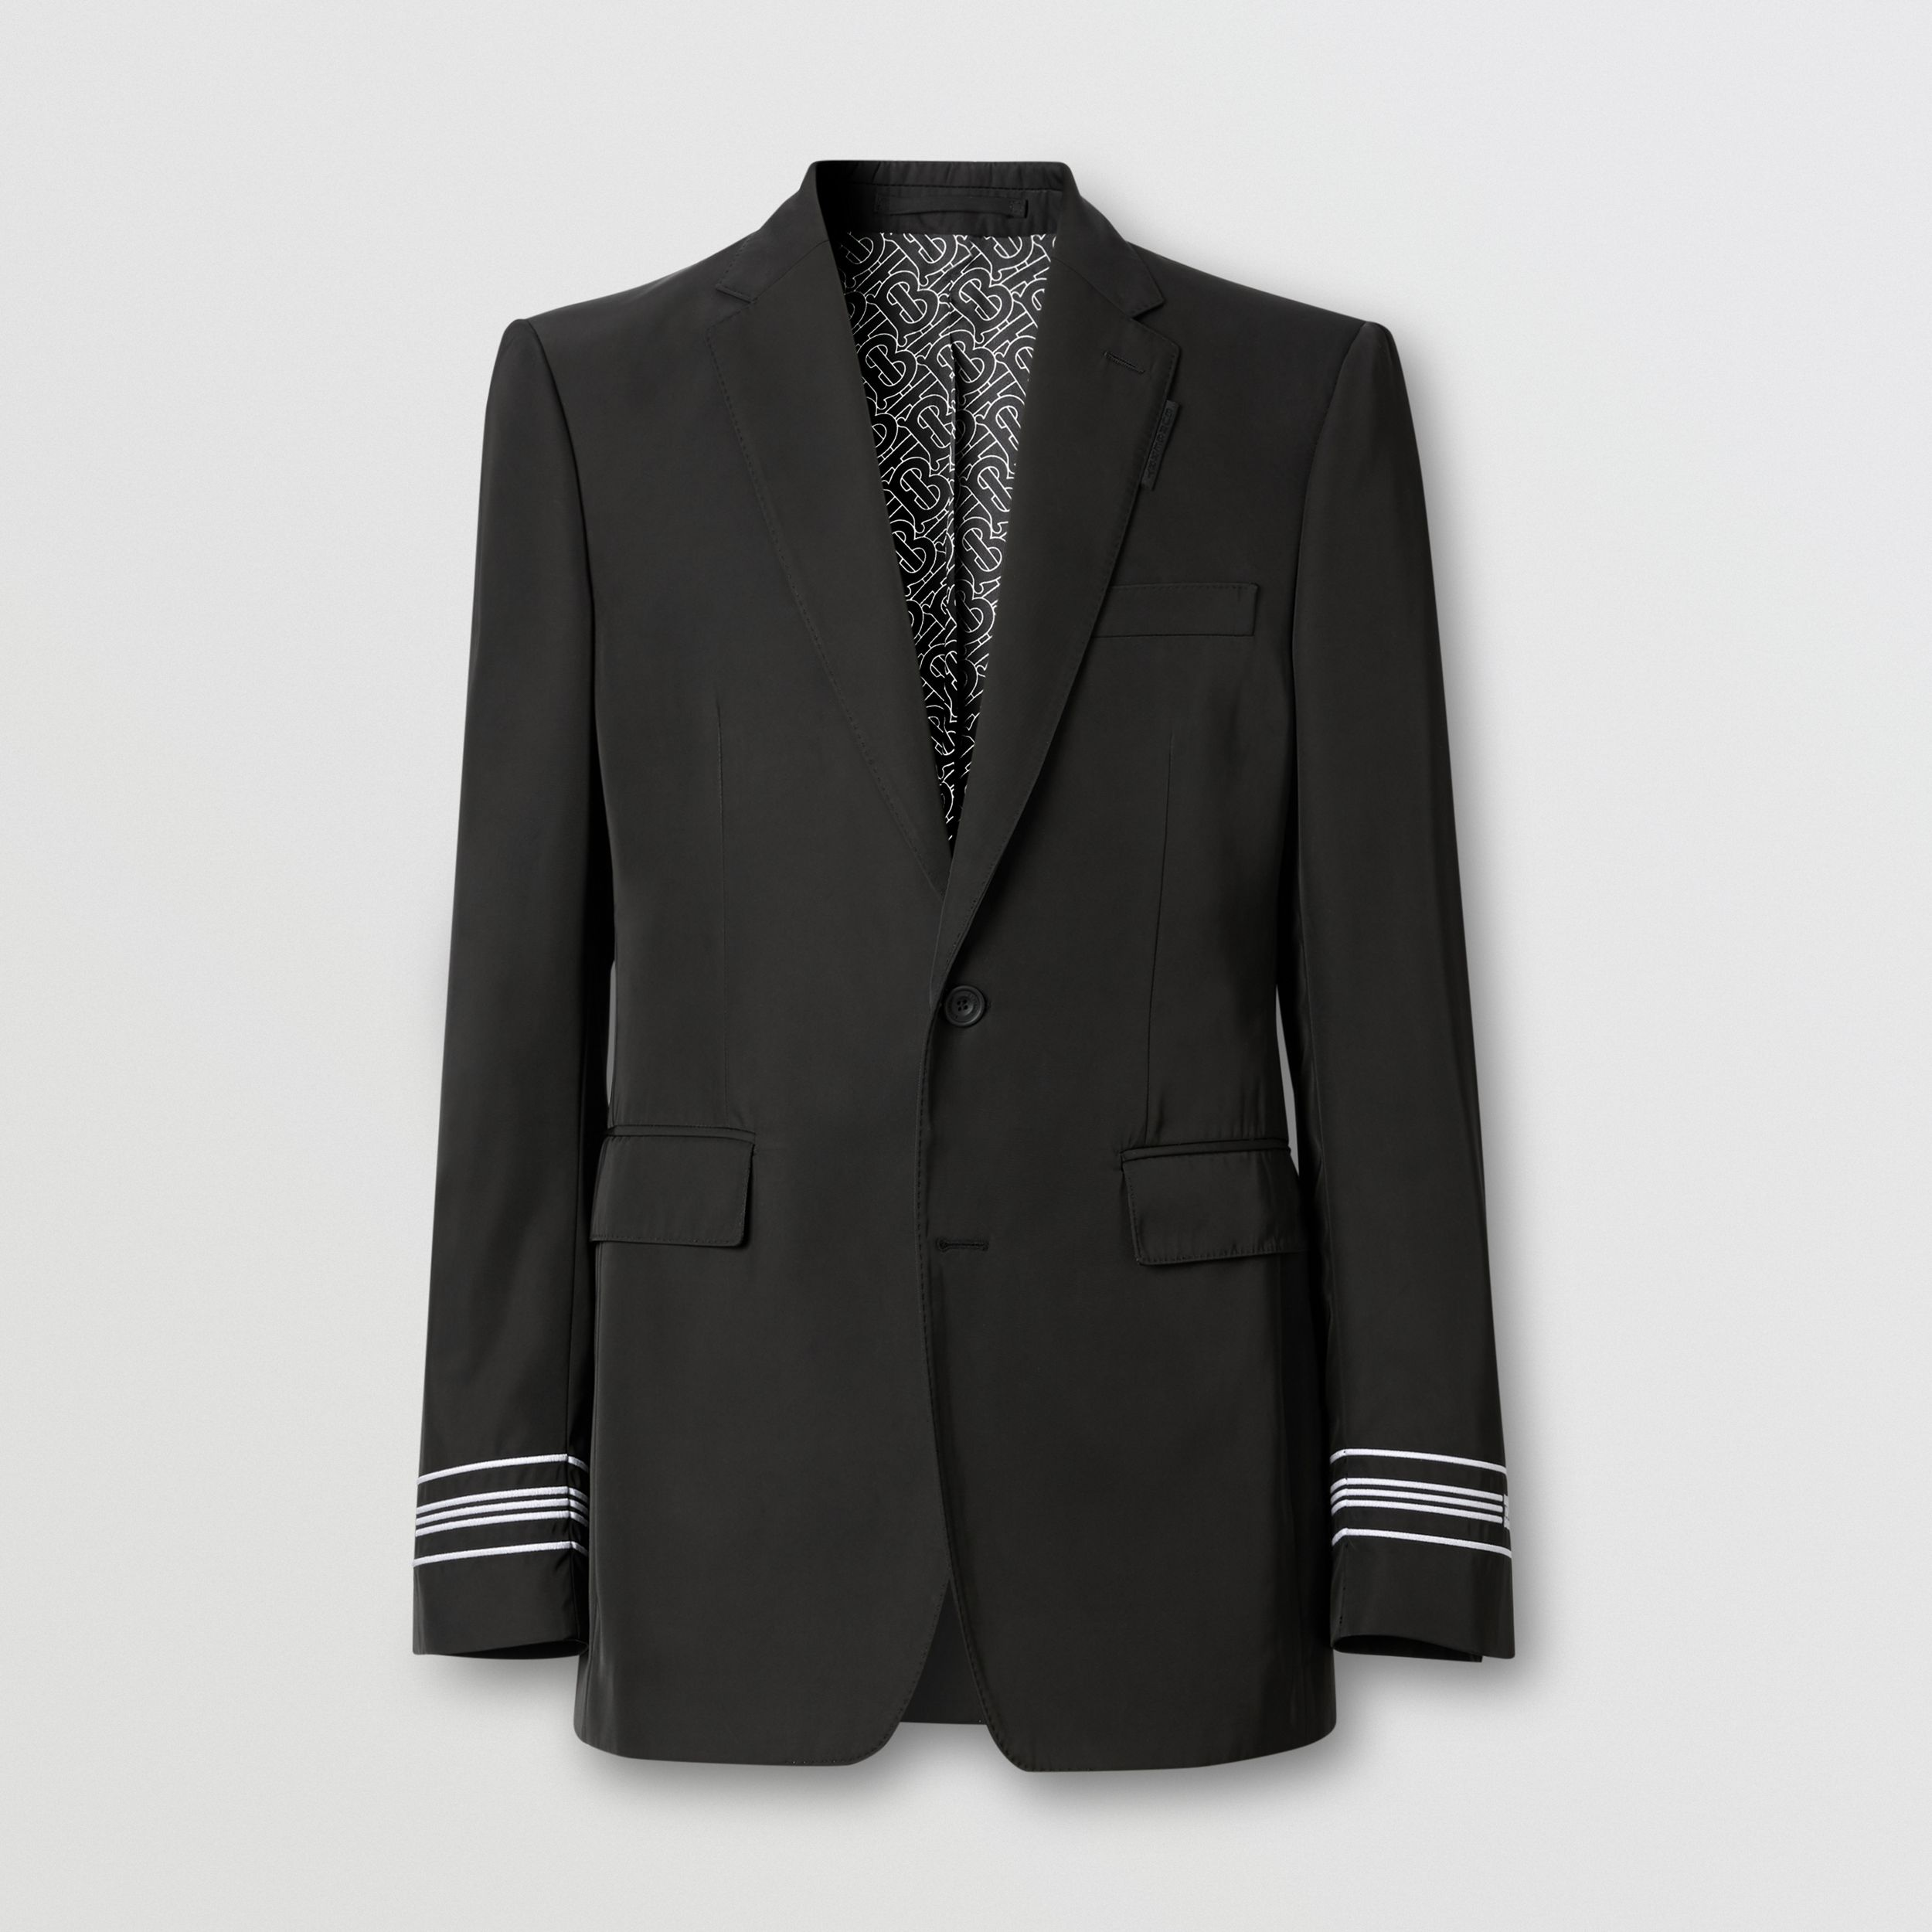 Classic Fit Stripe Detail Technical Twill Tailored Jacket in Black - Men | Burberry United States - 4